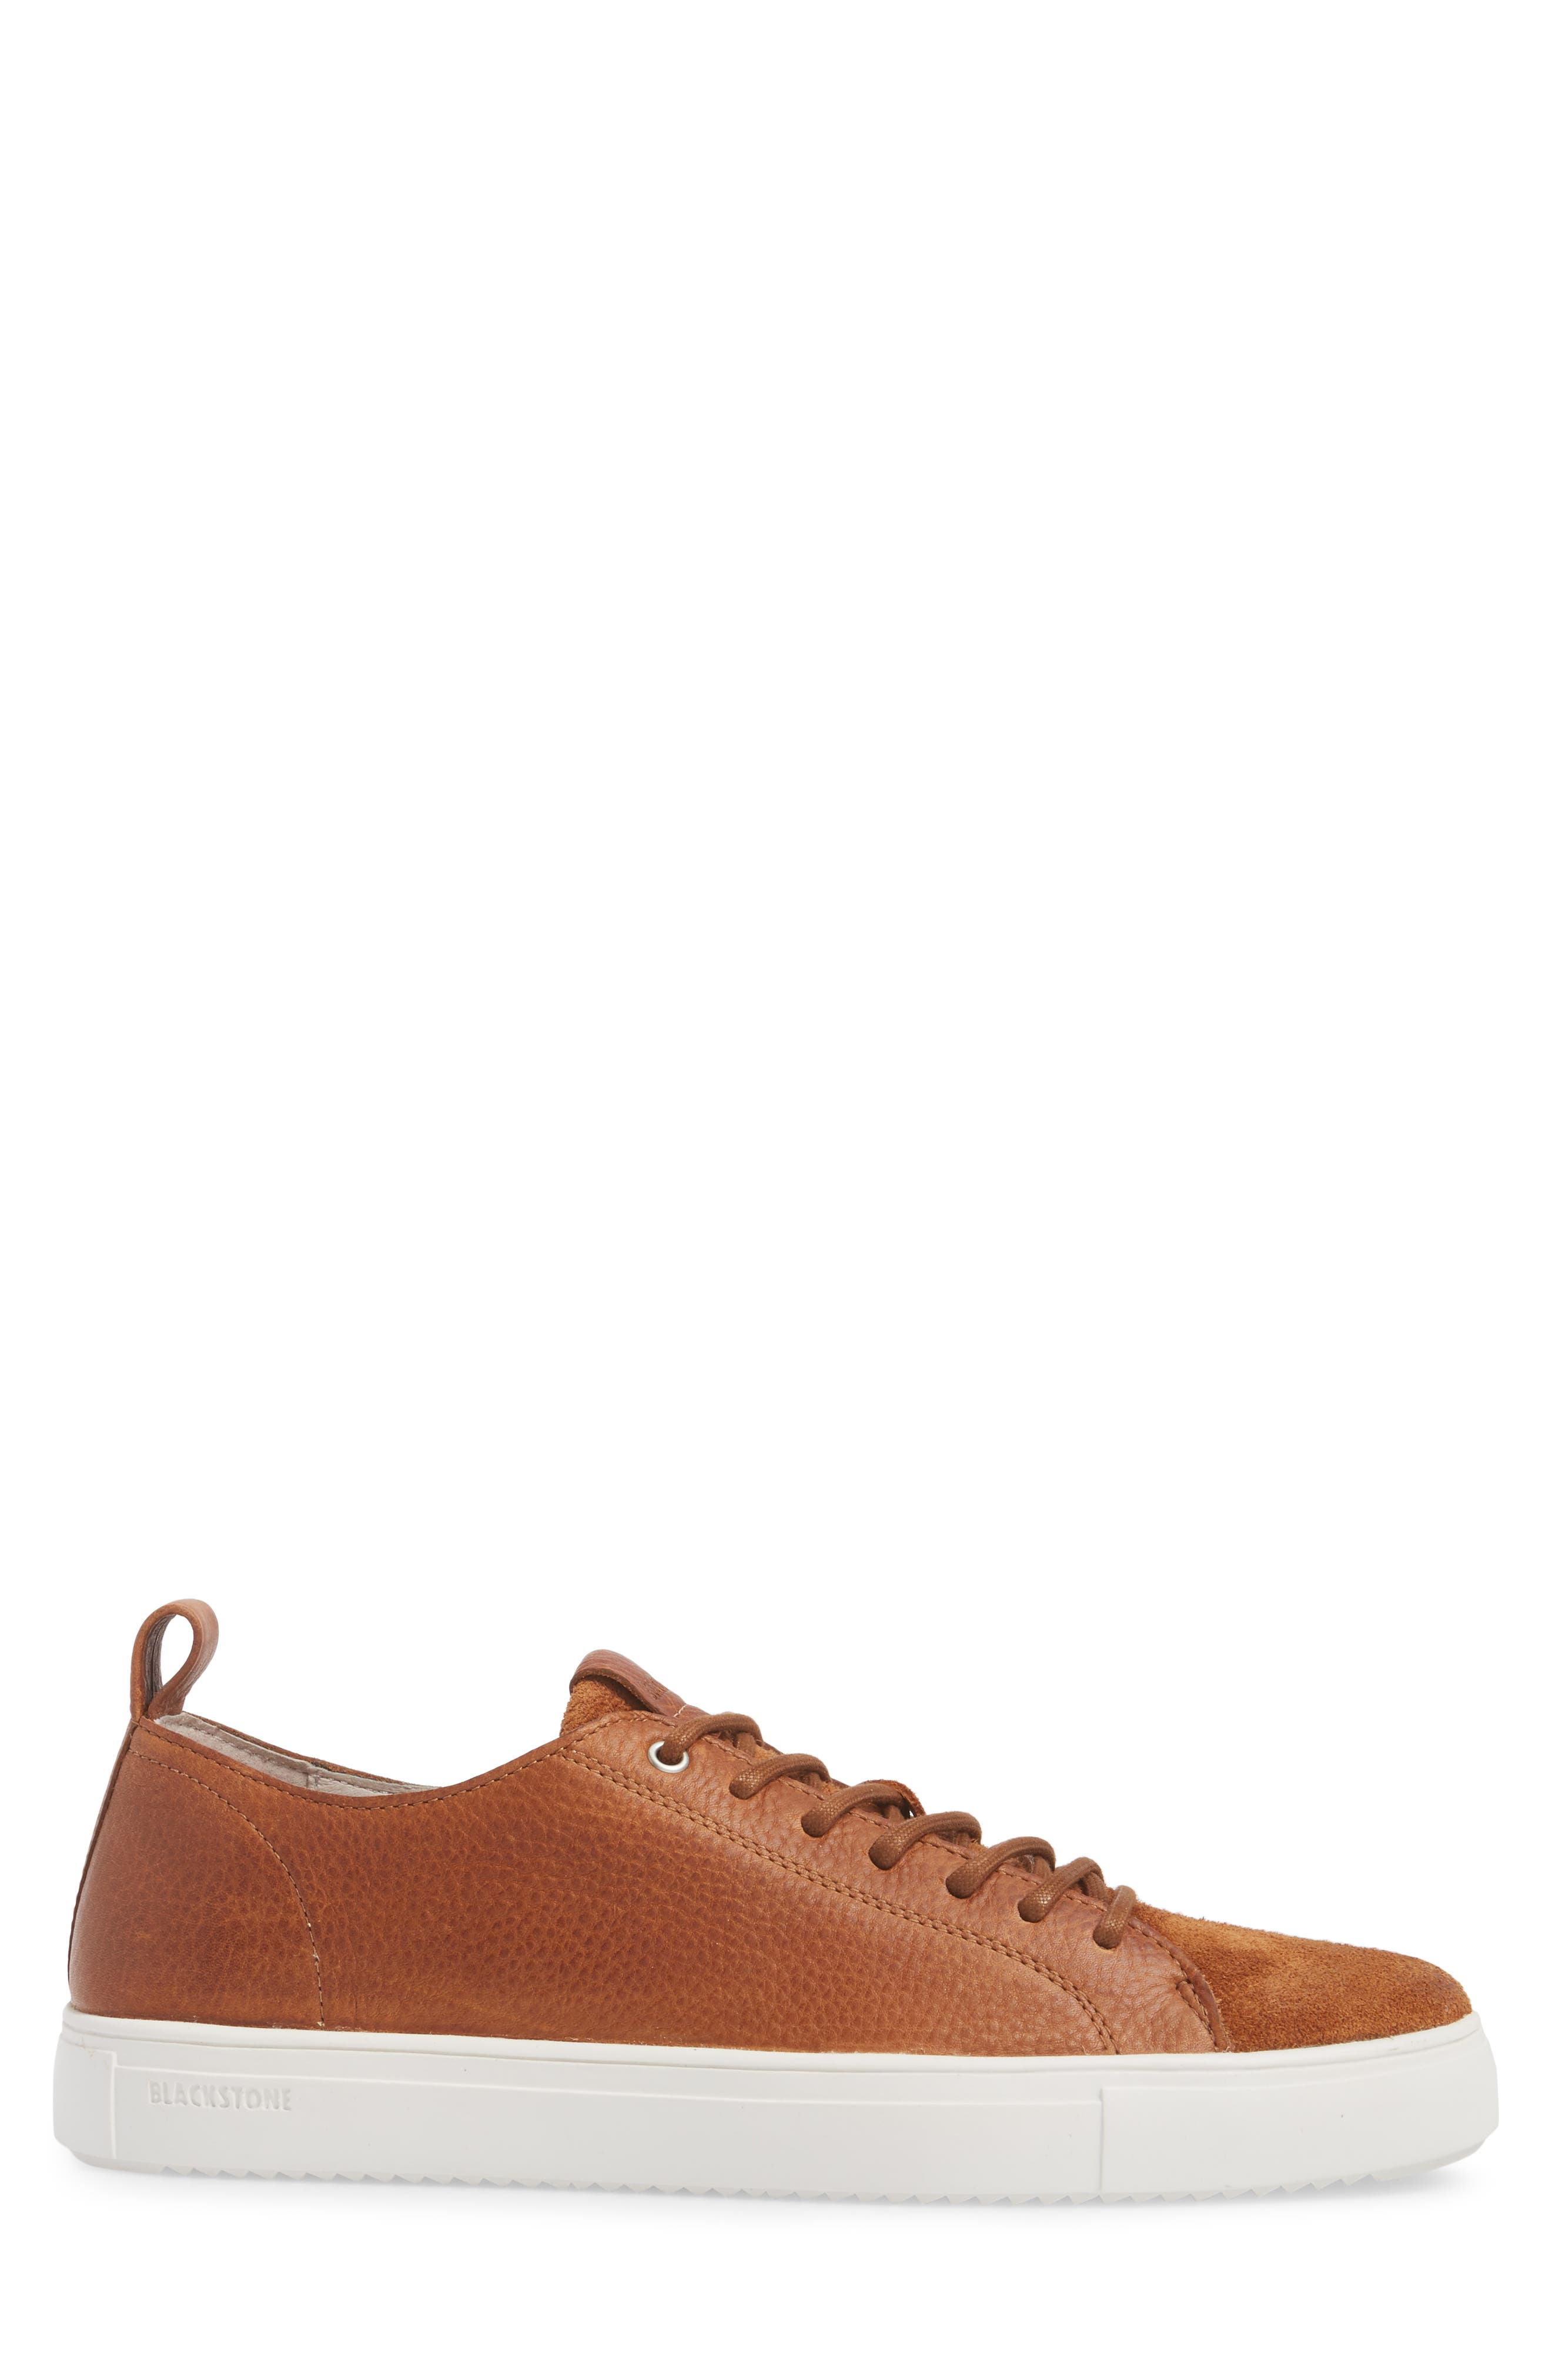 PM46 Low Top Sneaker,                             Alternate thumbnail 3, color,                             Cuoio Leather